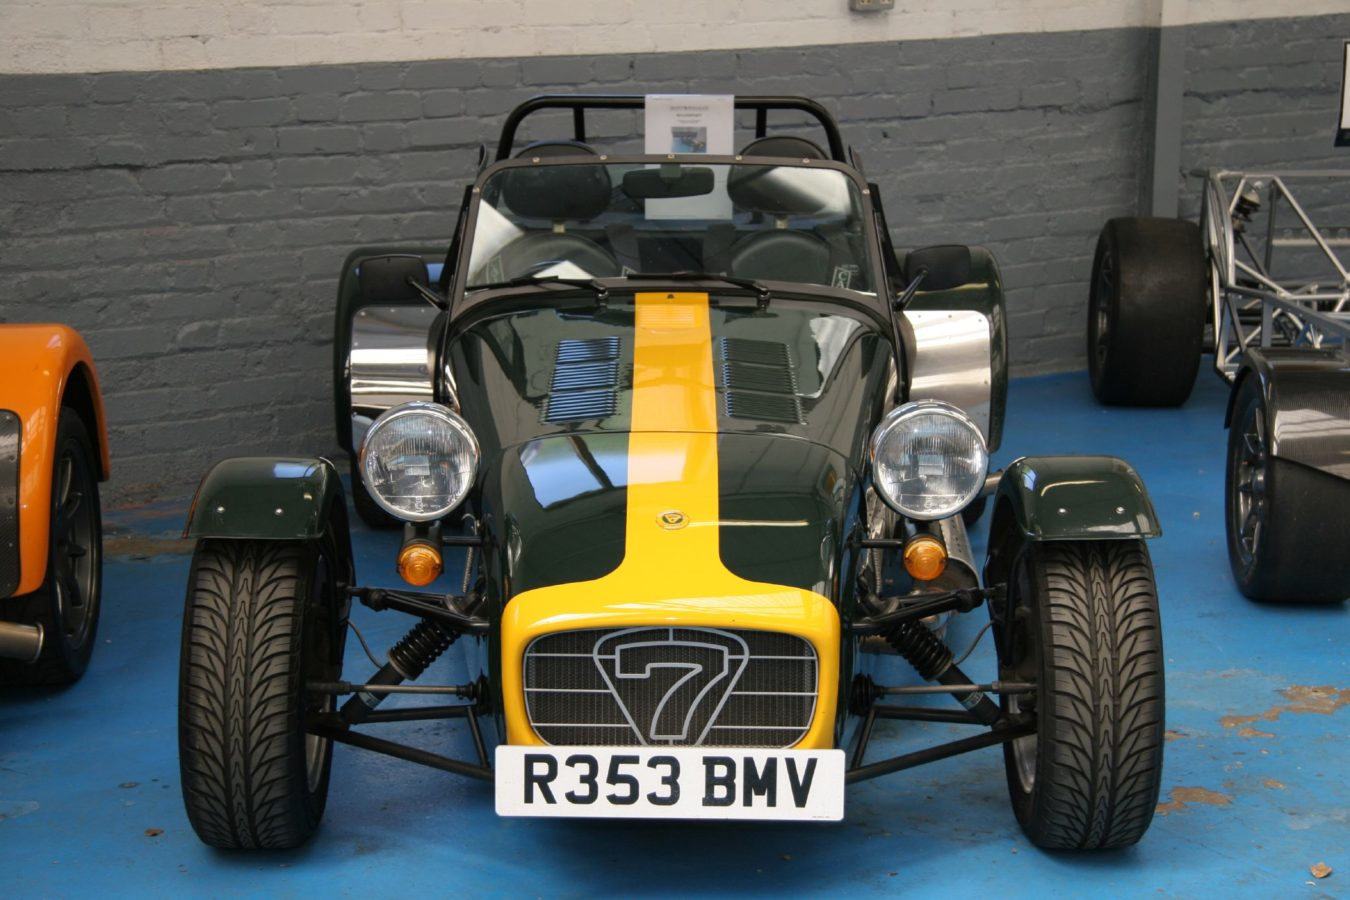 Caterham_7_at_Caterham's_showroom_-_Flickr_-_exfordy